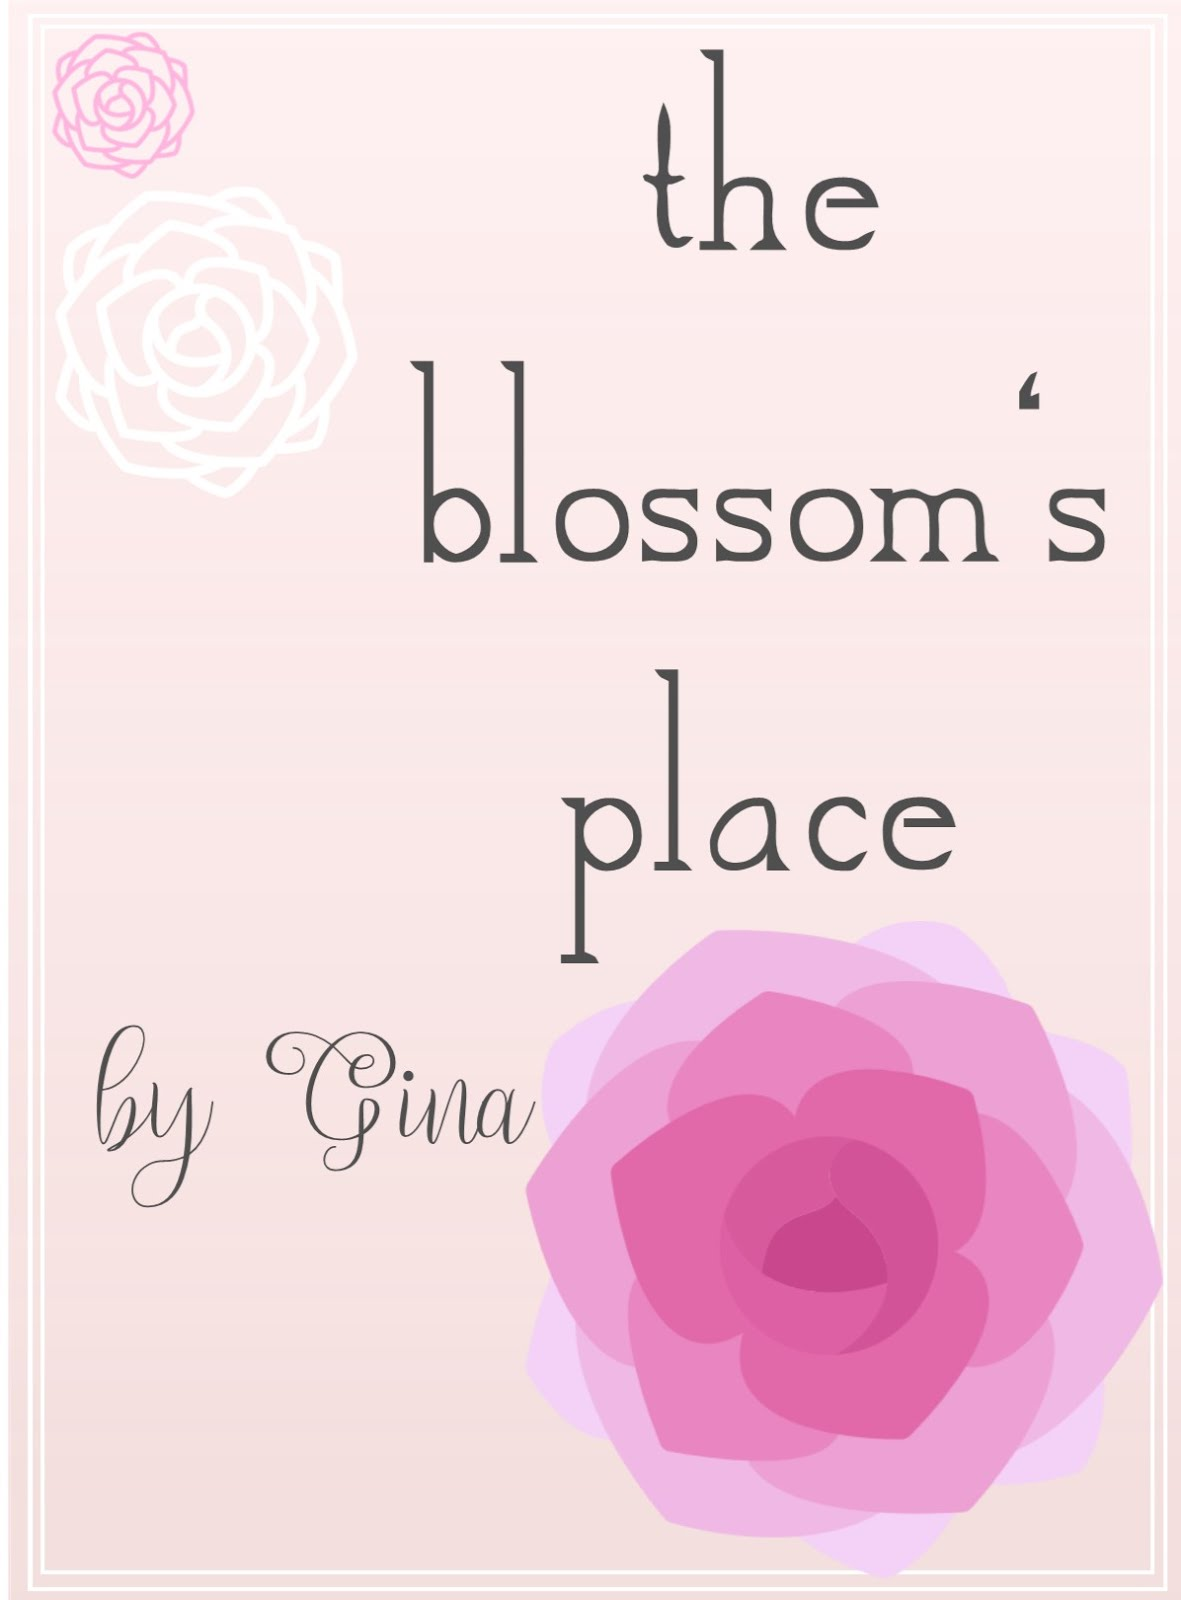 the blossom's place